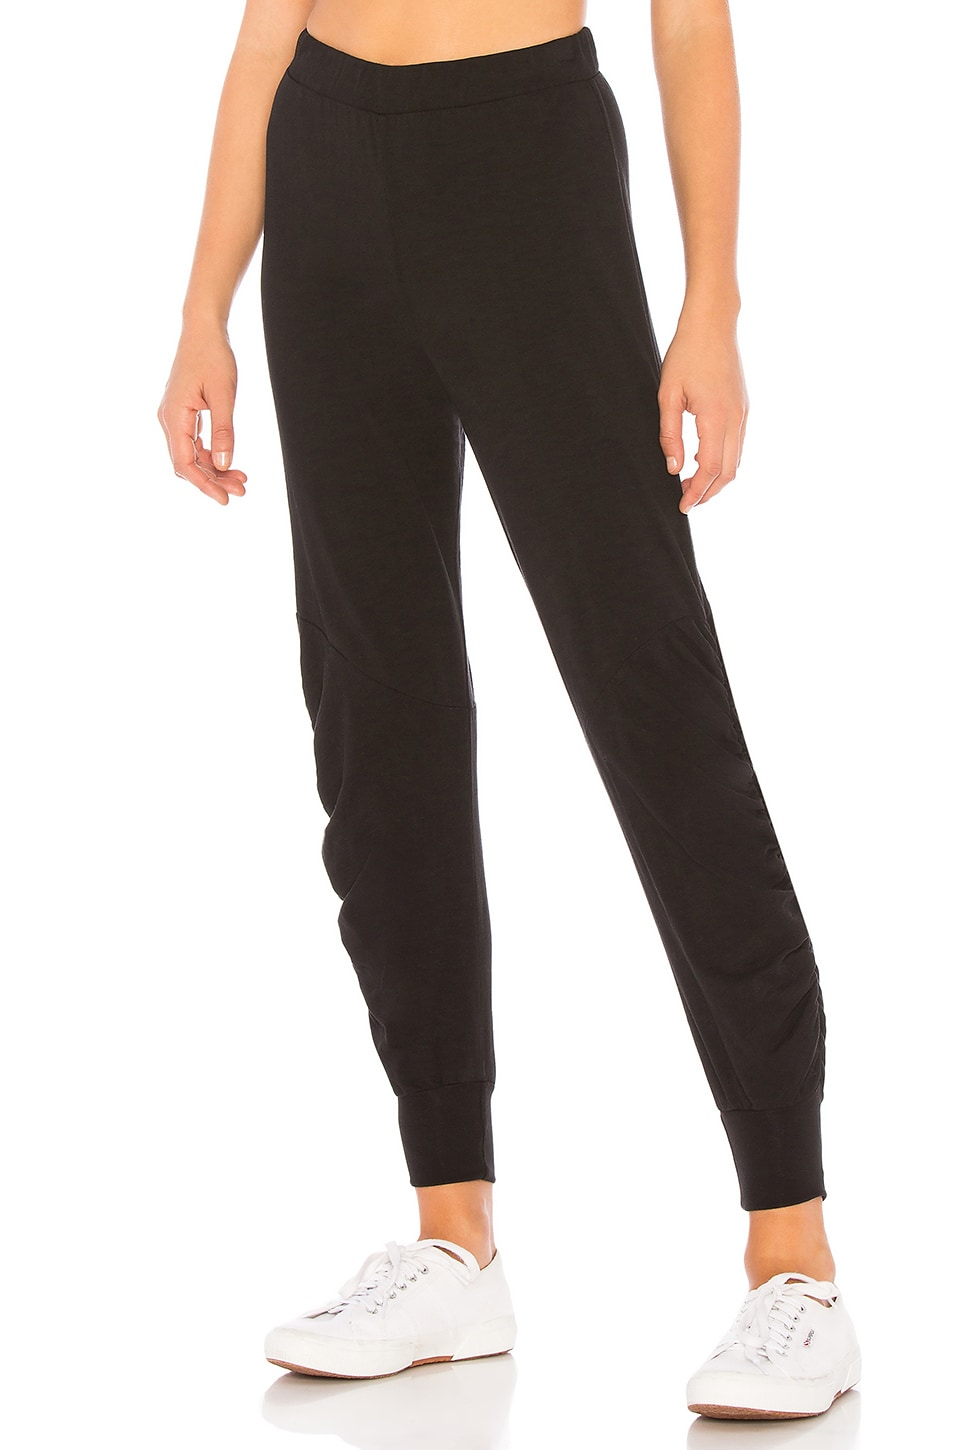 CHILL BY WILL Sienna Joggers in Black